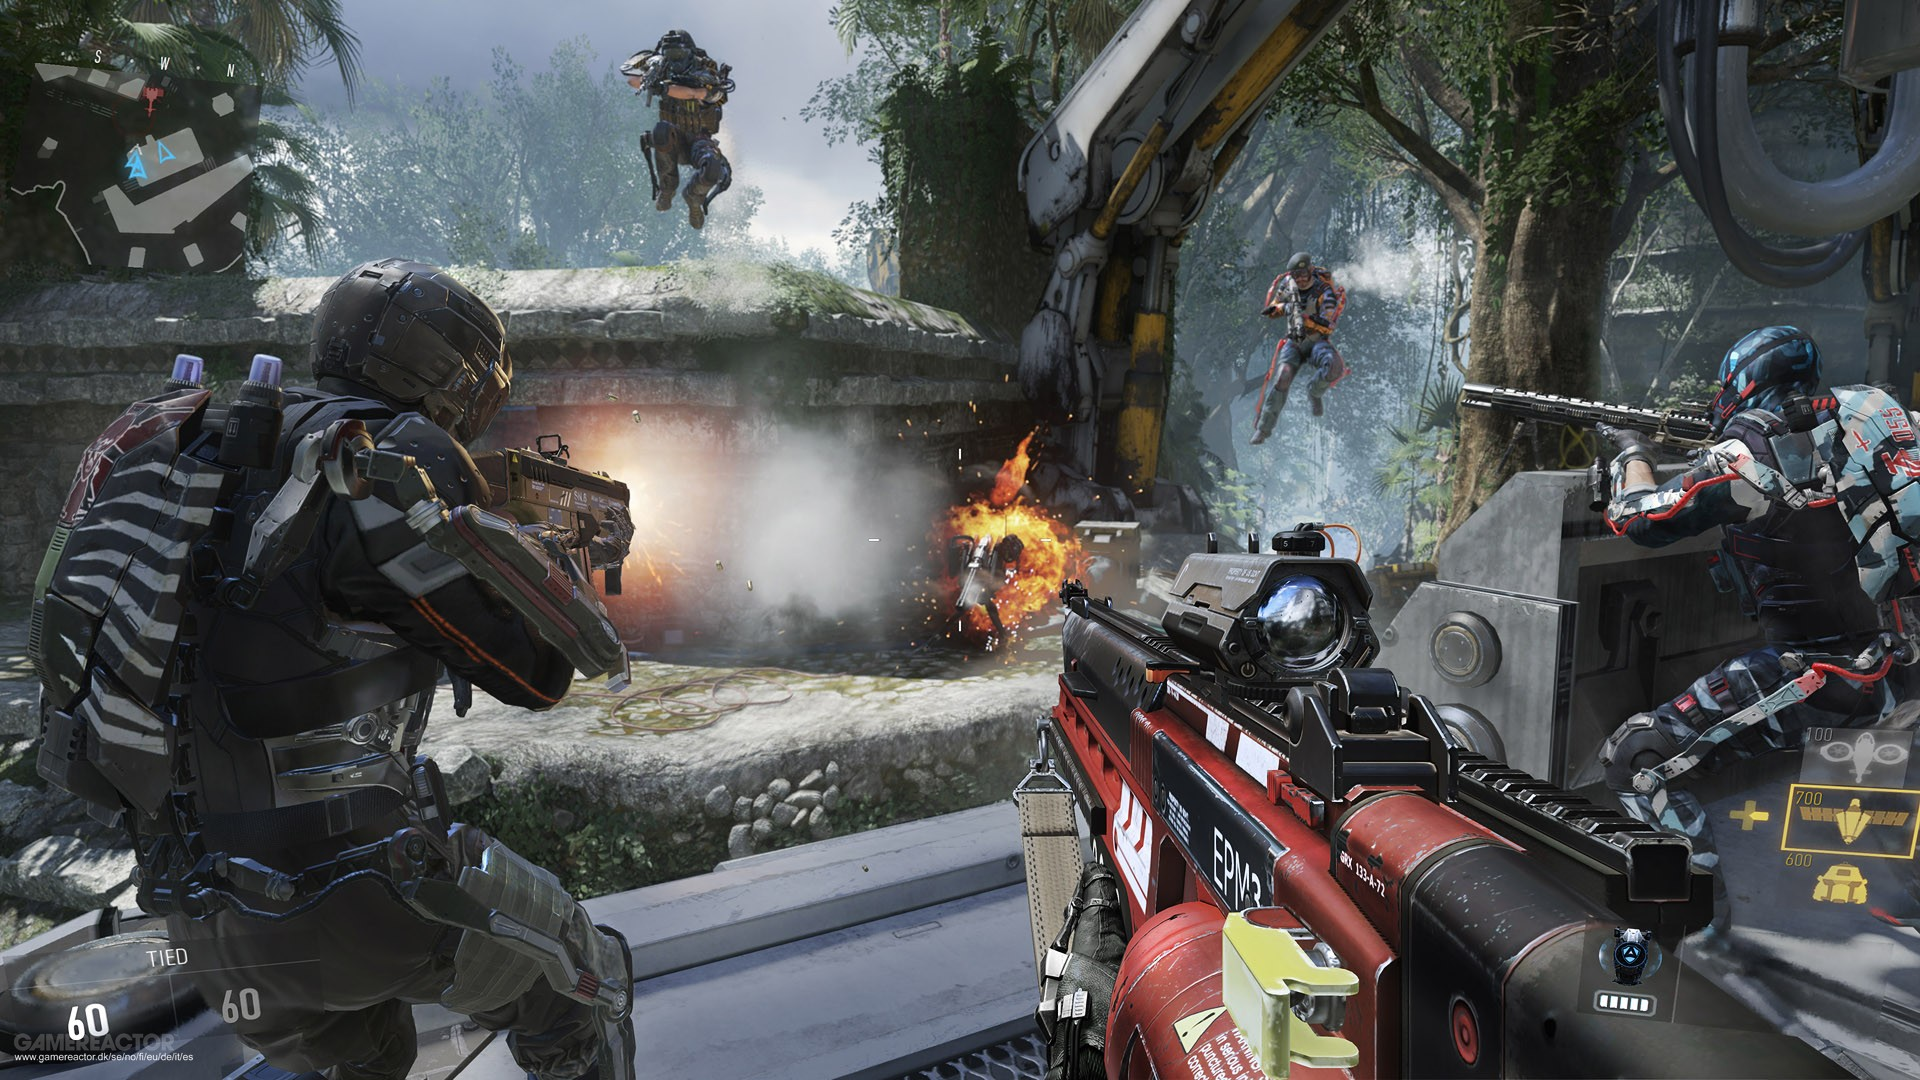 Imágenes de Call of Duty: Advanced Warfare 11/11